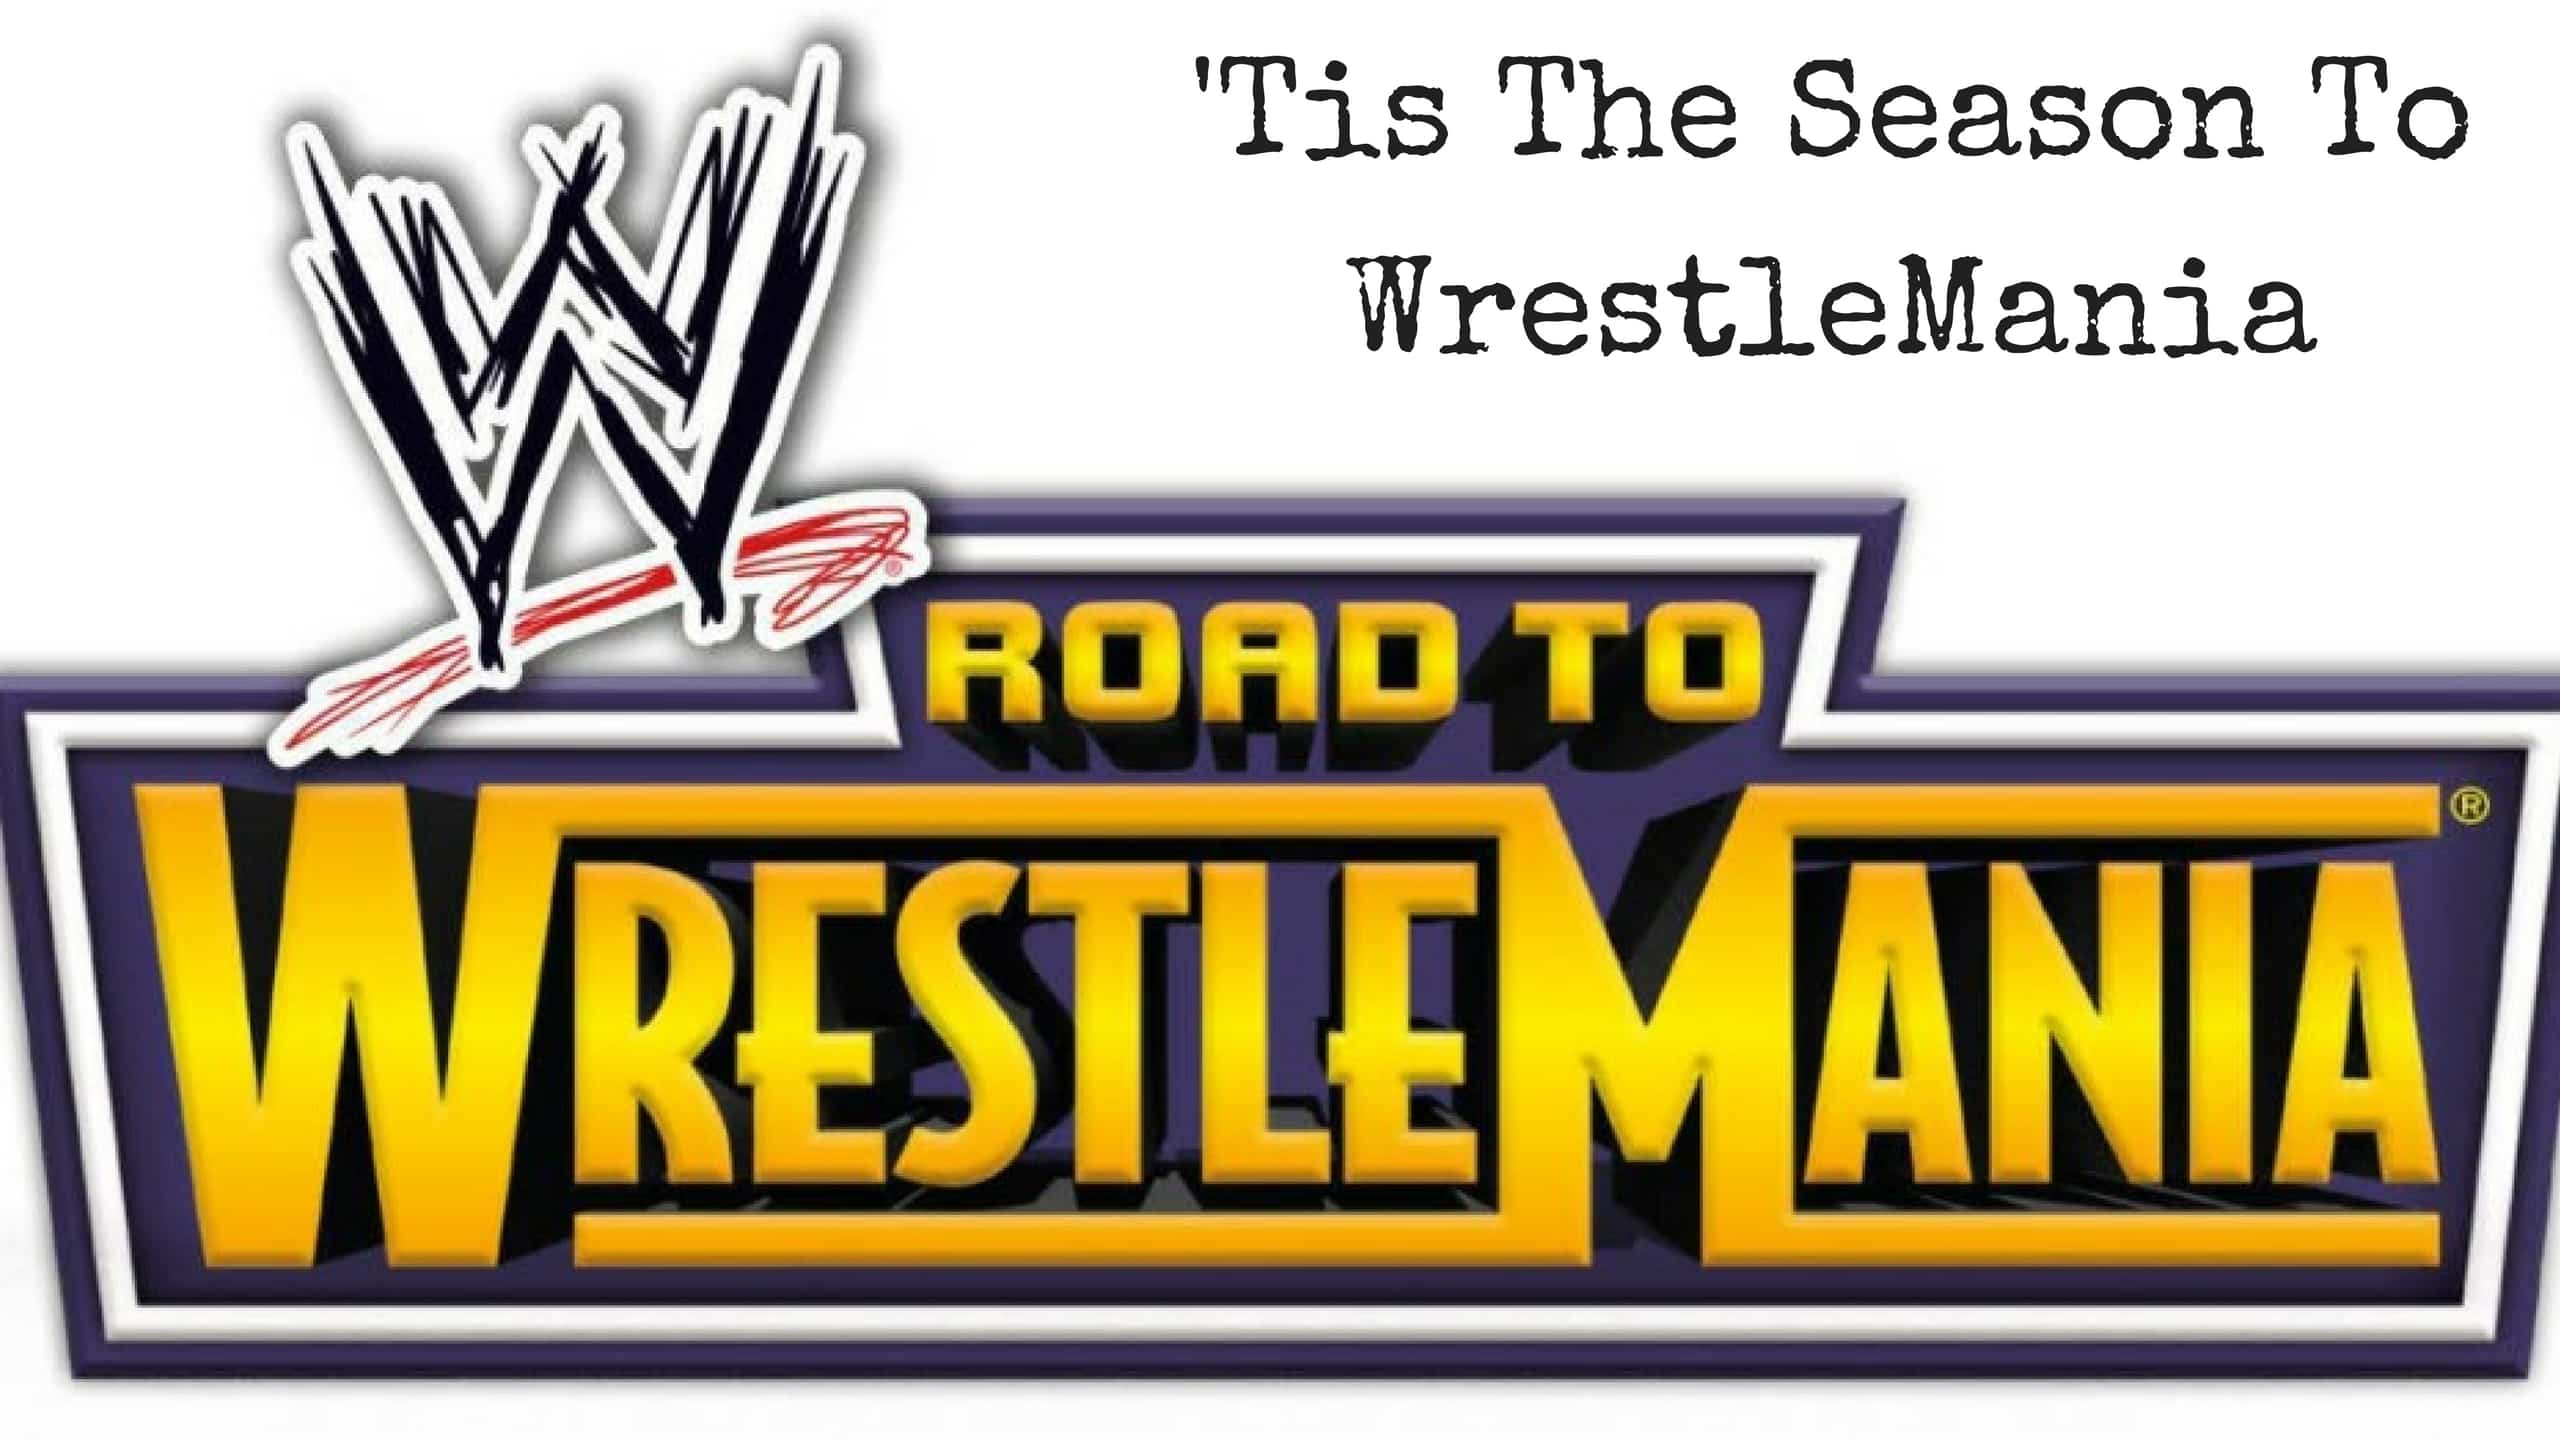 TGBP 050 Tis The Season To WrestleMania